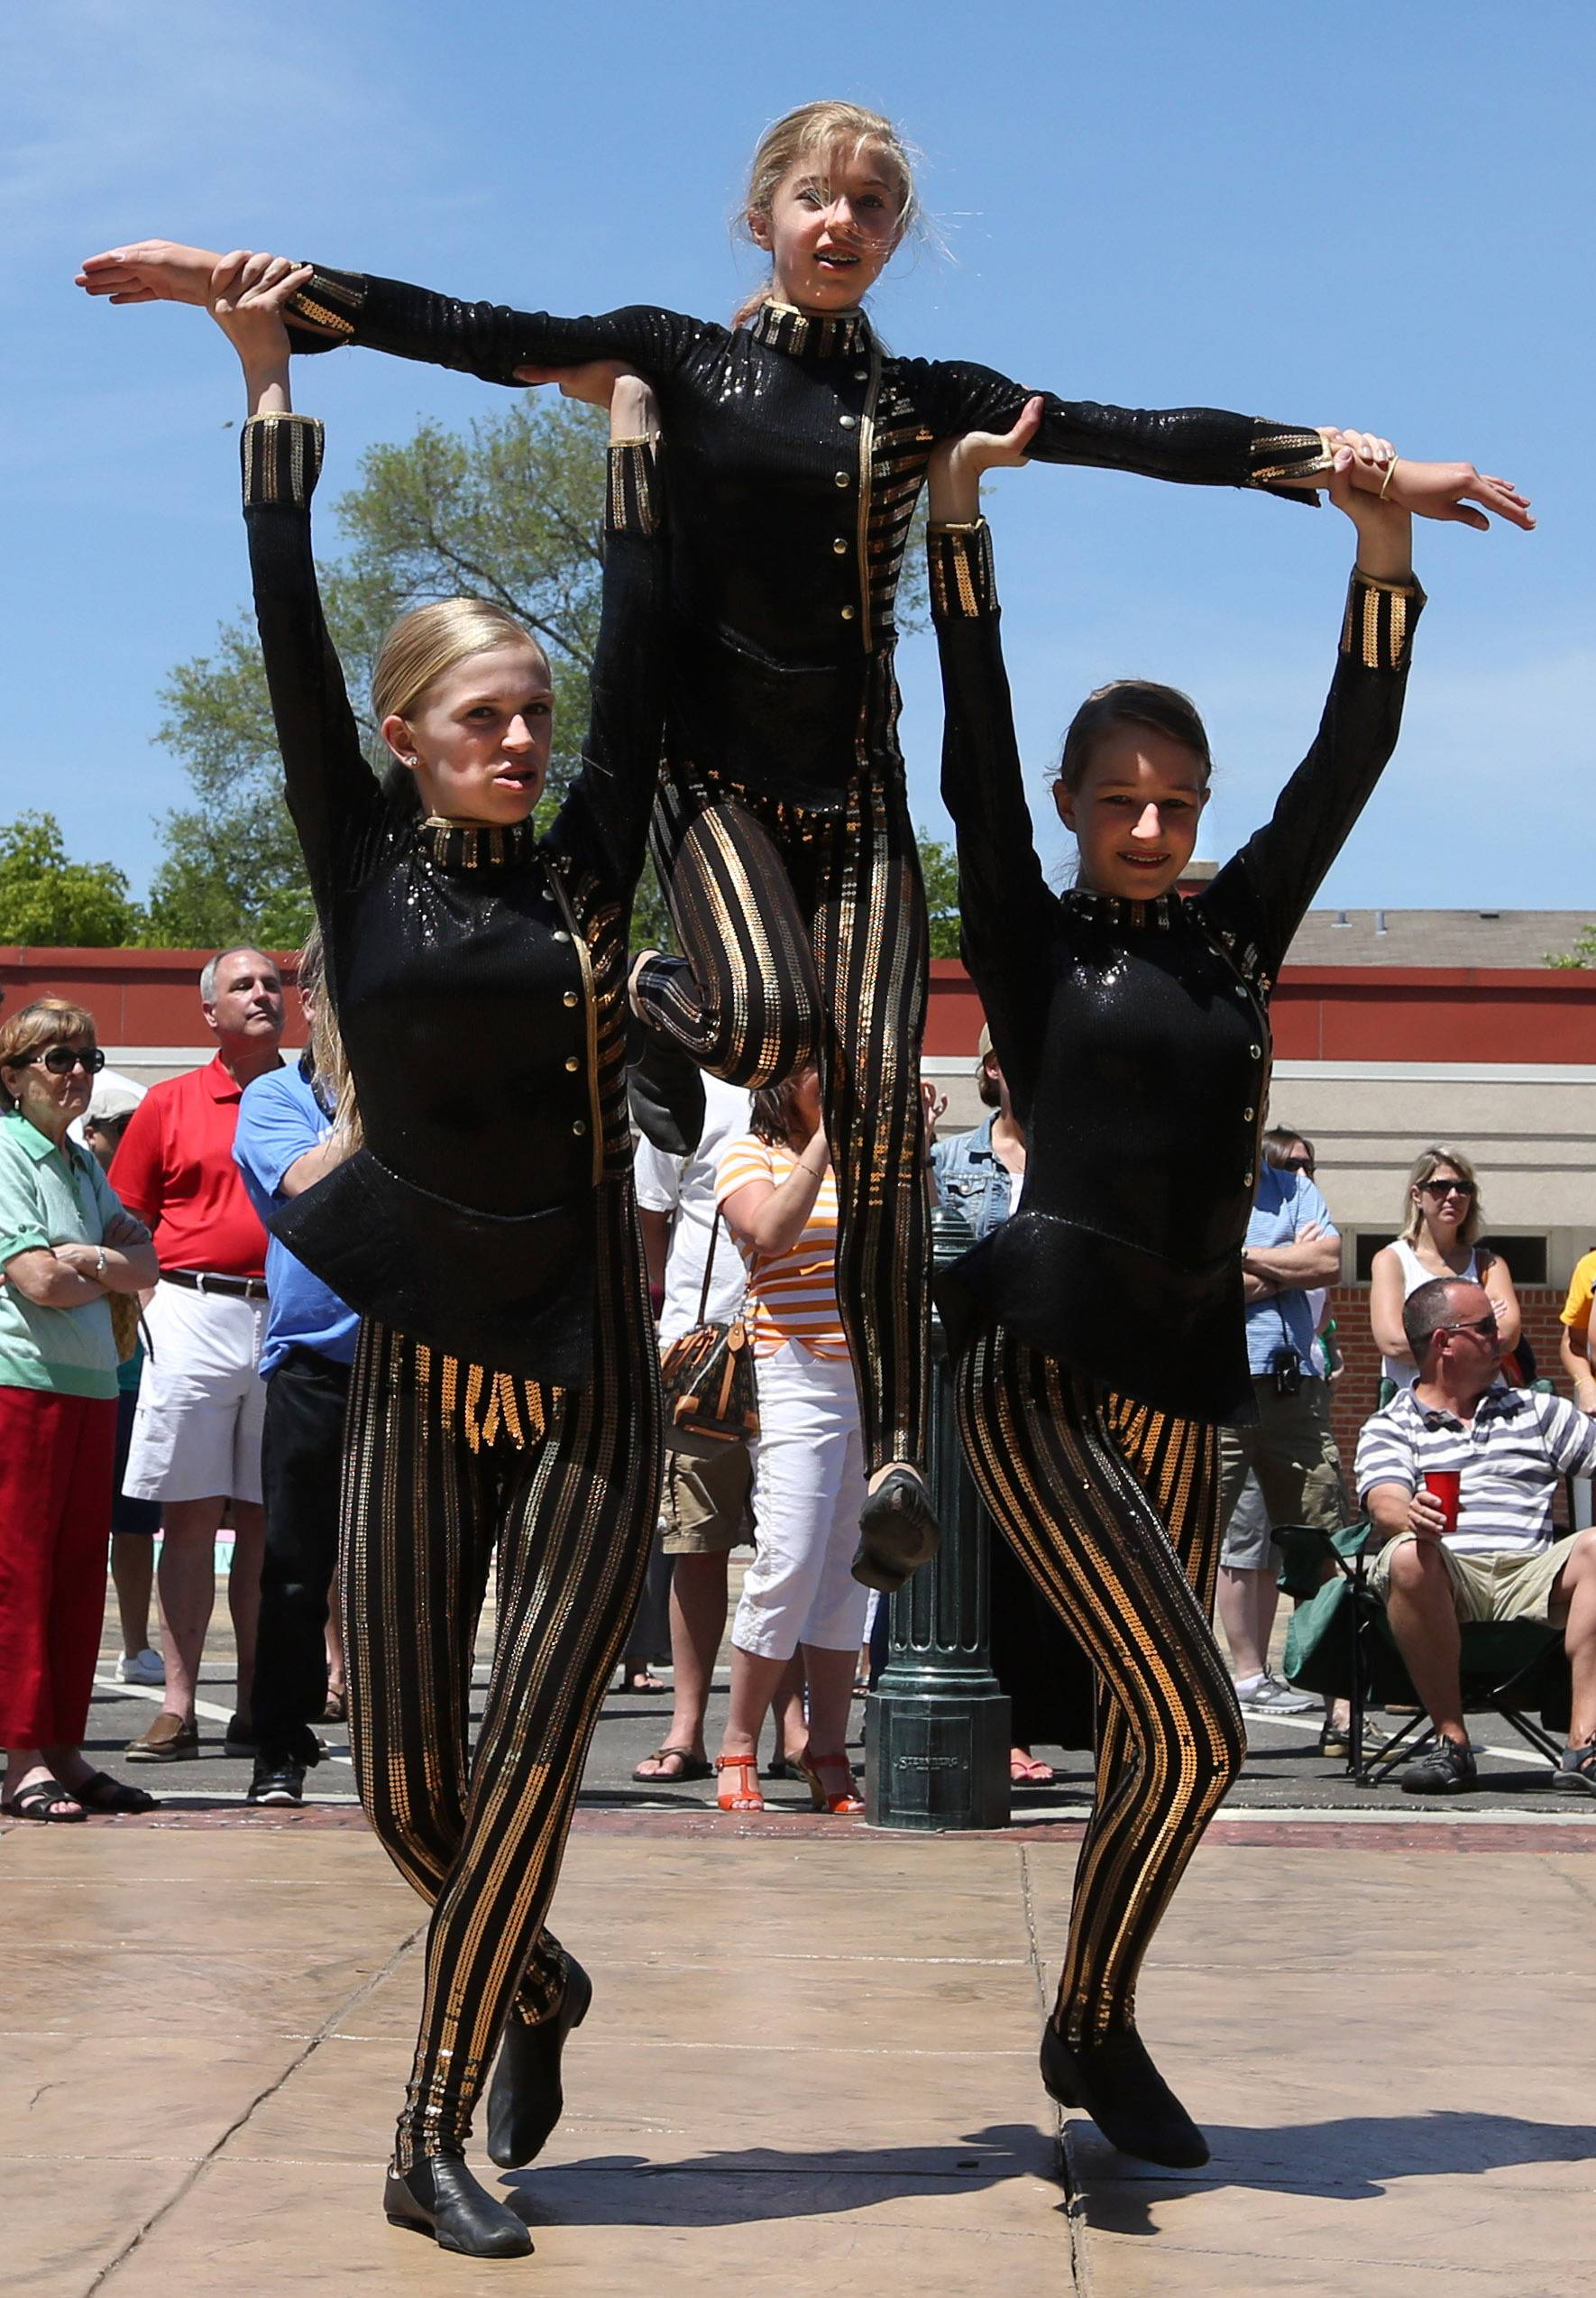 Shannon Leahy, left, and Analise Steeber lift Jadie Kissner while dancing to pop and rock music as they preform with Dance Connection in Grayslake at the 19th annual Grayslake Arts Festival on Saturday.